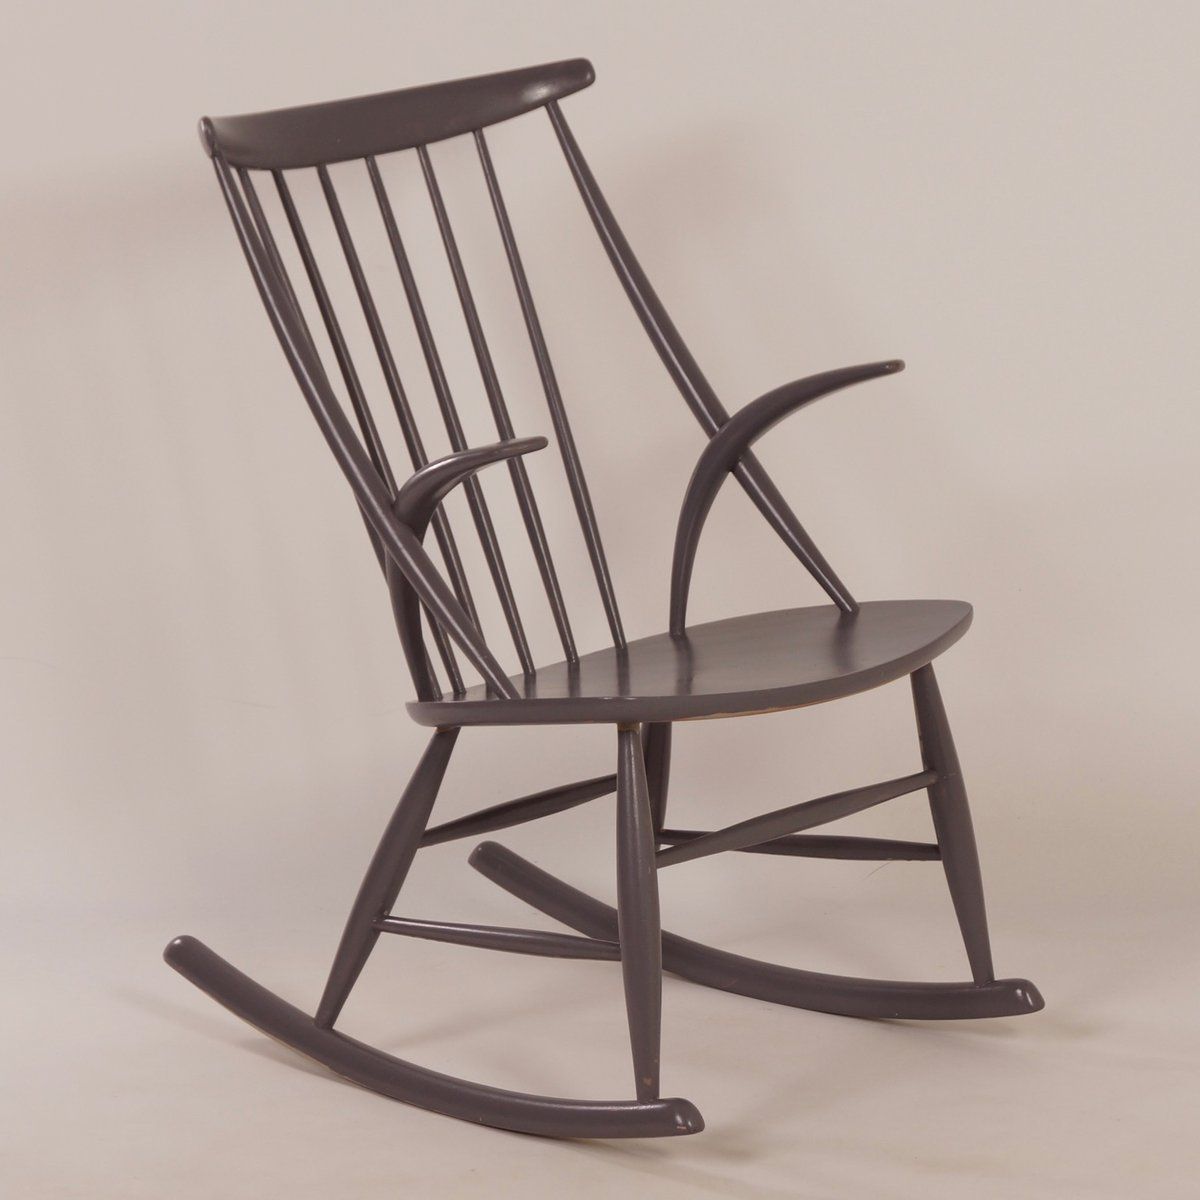 Danish Rocking Chair Danish Iw3 Rocking Chair By Illum Wikkelsø For Niels